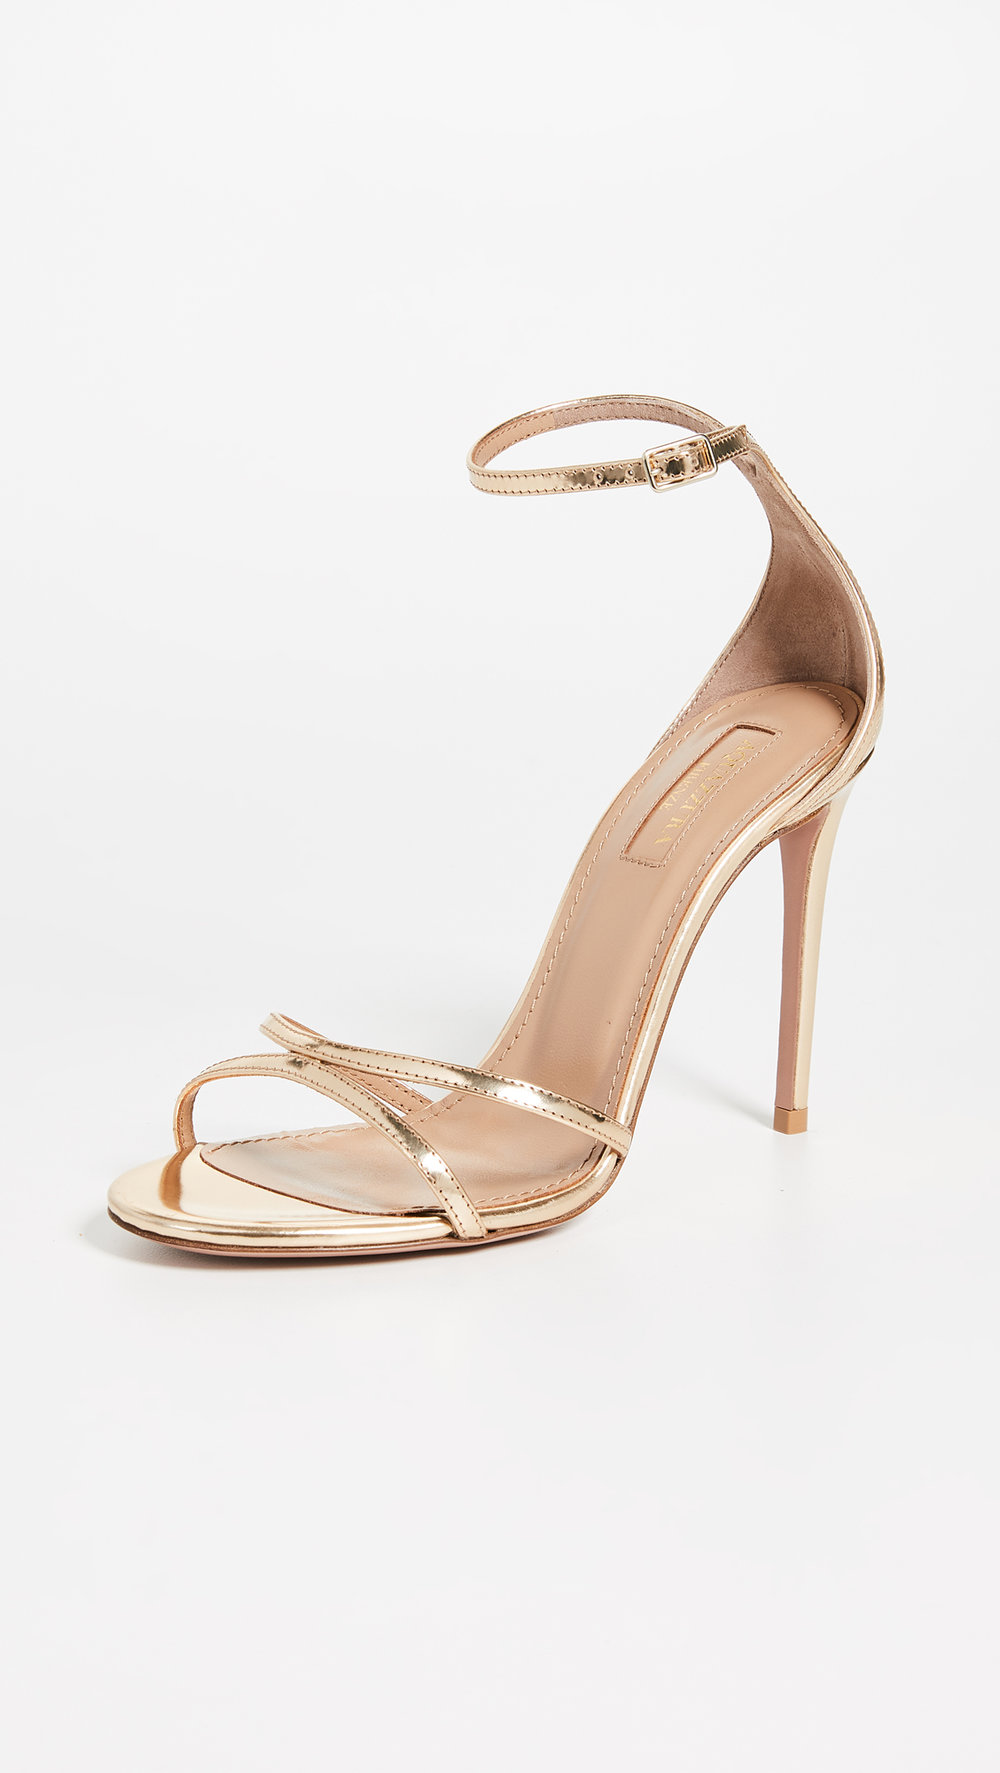 PURIST 105MM SANDAL BY AQUAZURRA, $695 AT SHOPBOP.COM